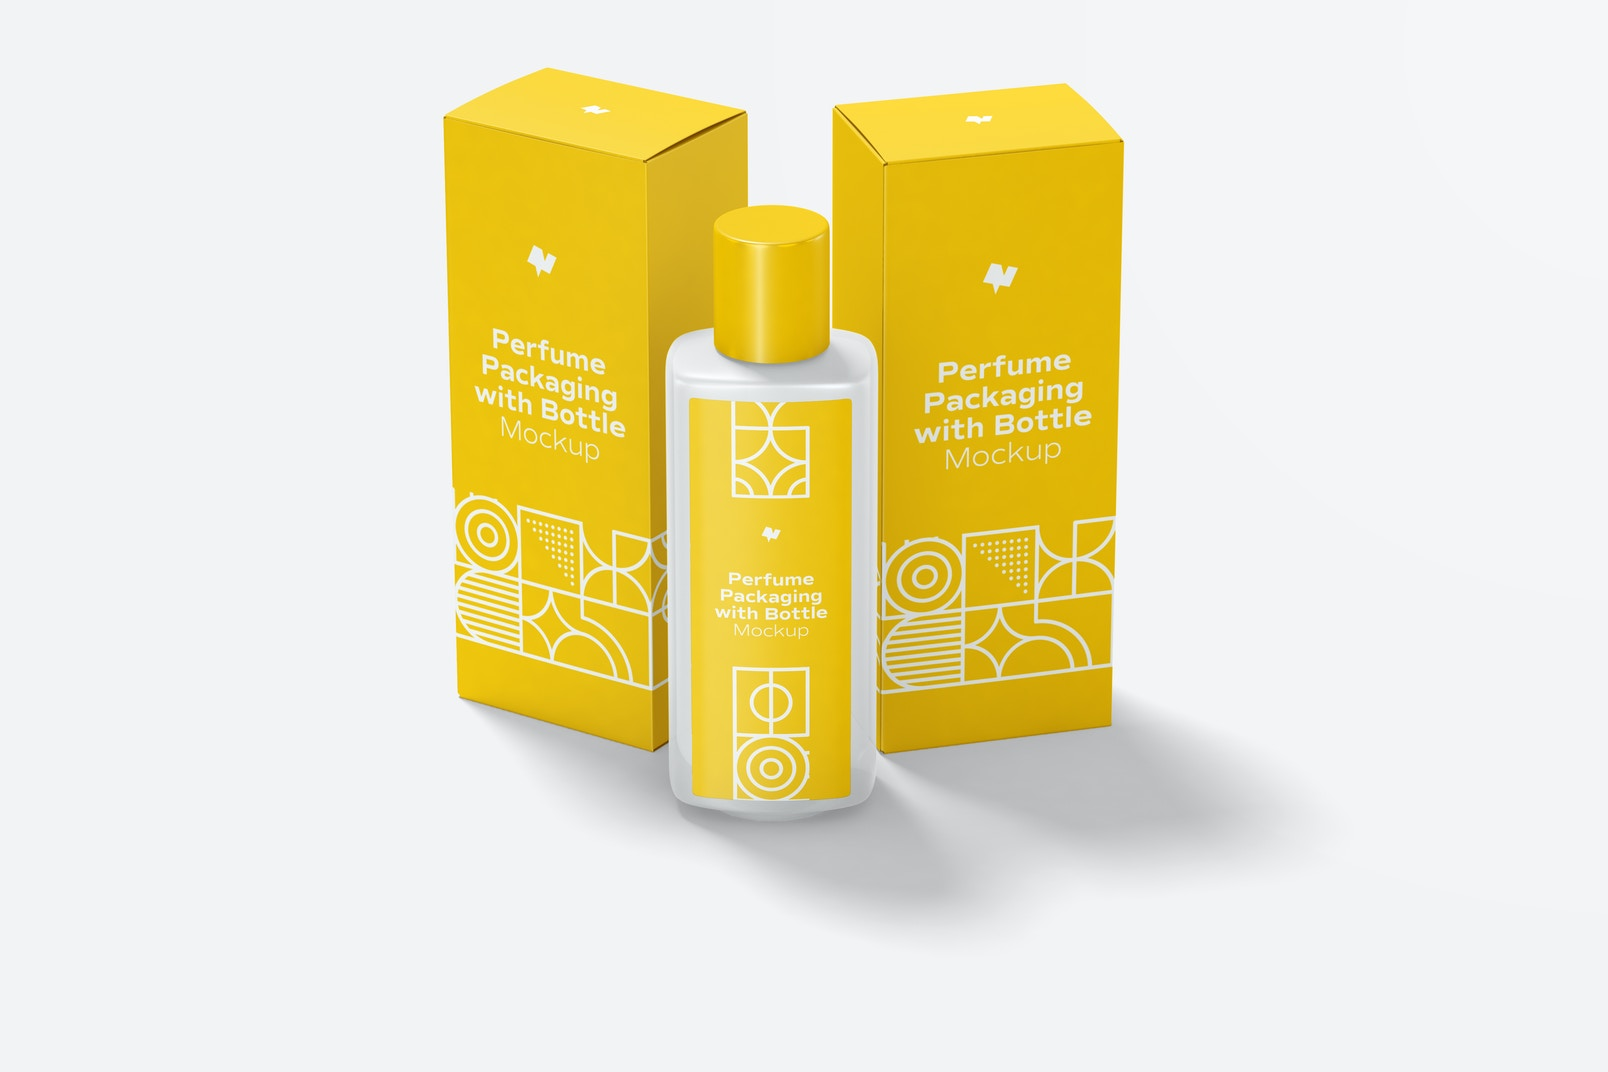 Large Perfume Packaging with Bottle Mockup, Front View